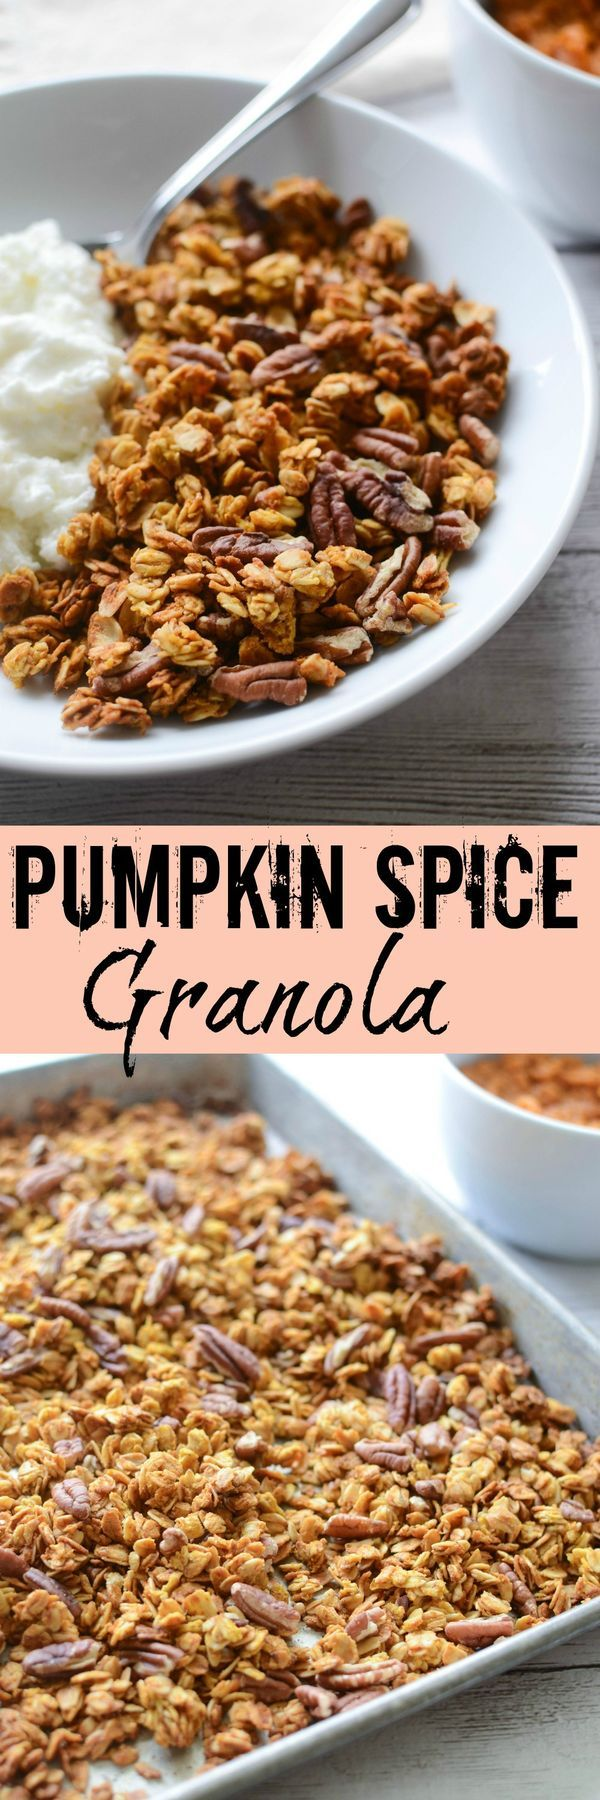 Homemade Pumpkin Spice Granola - crunchy and delicious! Perfect for breakfast or a healthy snack!